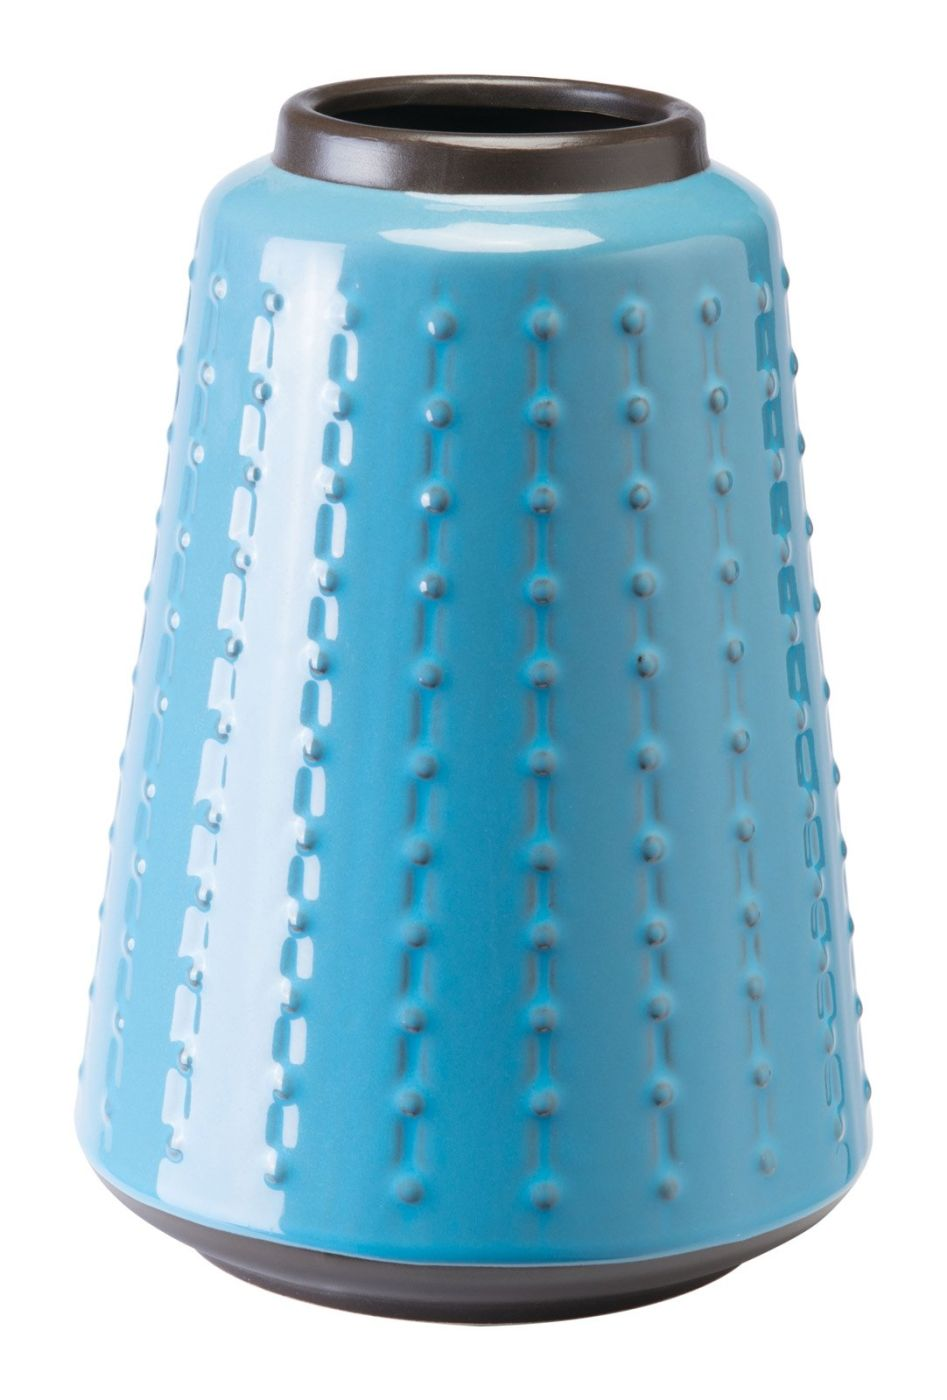 Dot vase small blue by zuo modern zuo a10394 for Dot wall vase